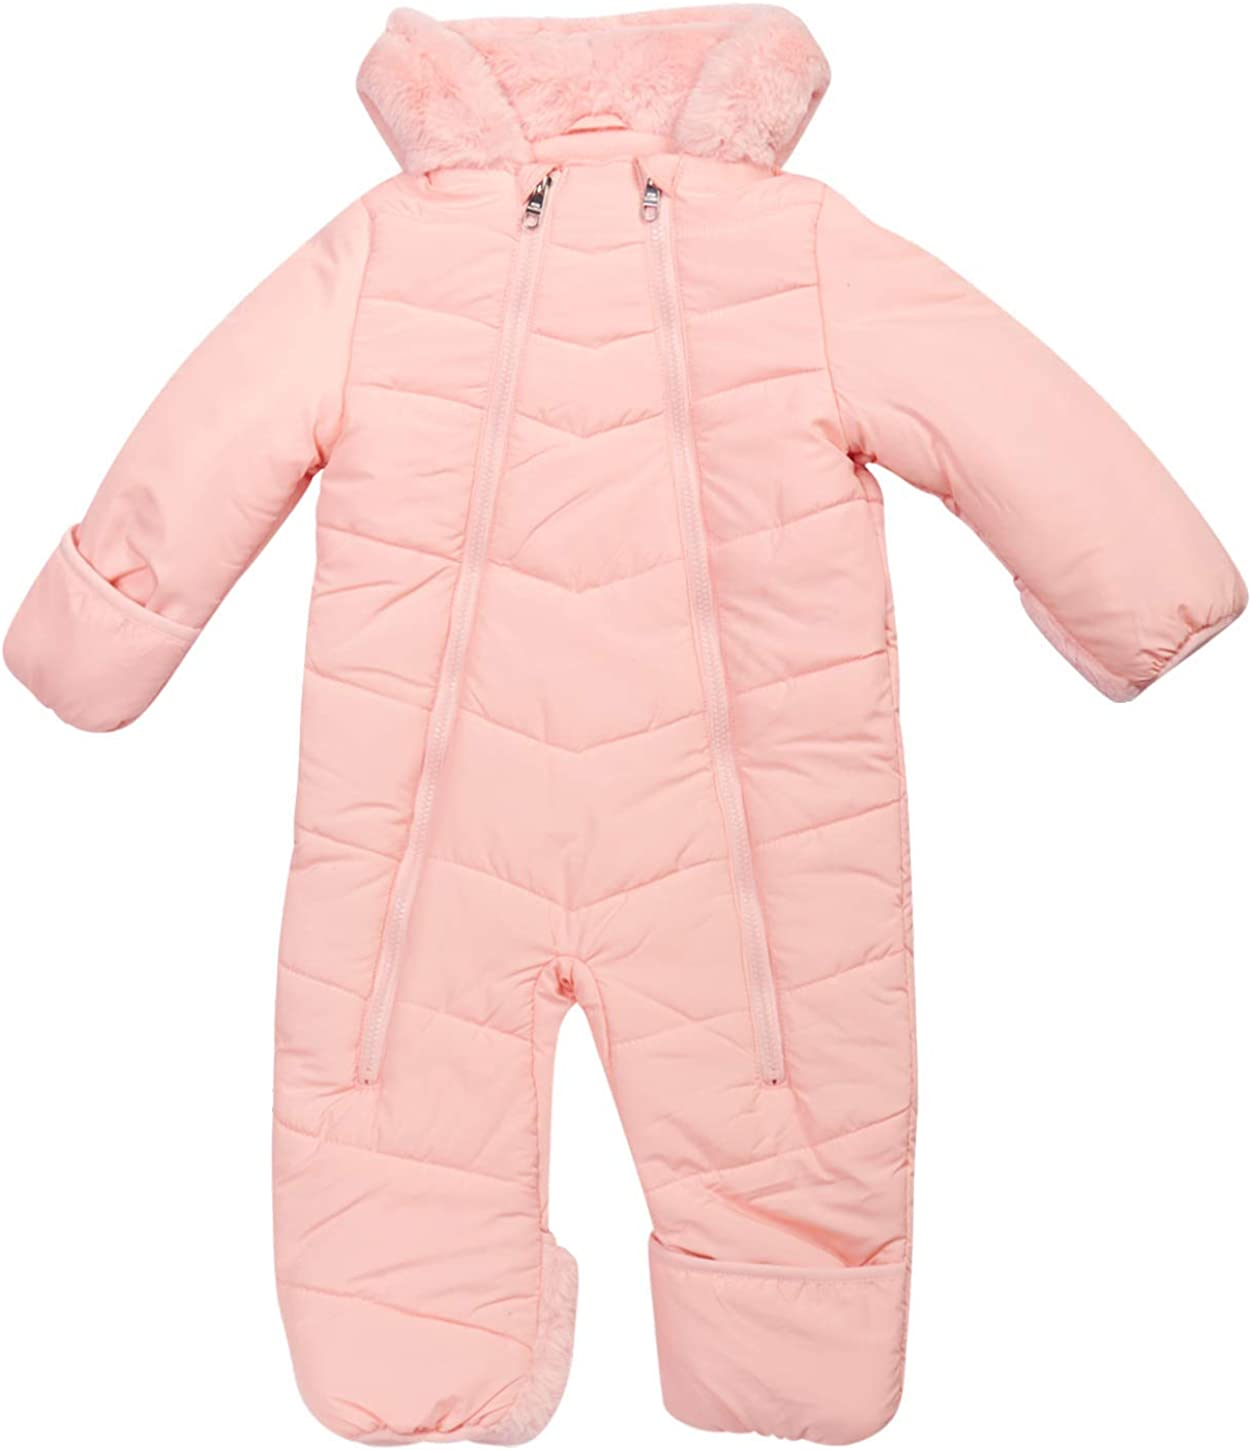 Poly Filled and Polar Fleece Lined with Sherpa Fur Hood Infant Size Steve Madden Baby Girls Snowsuit Pram